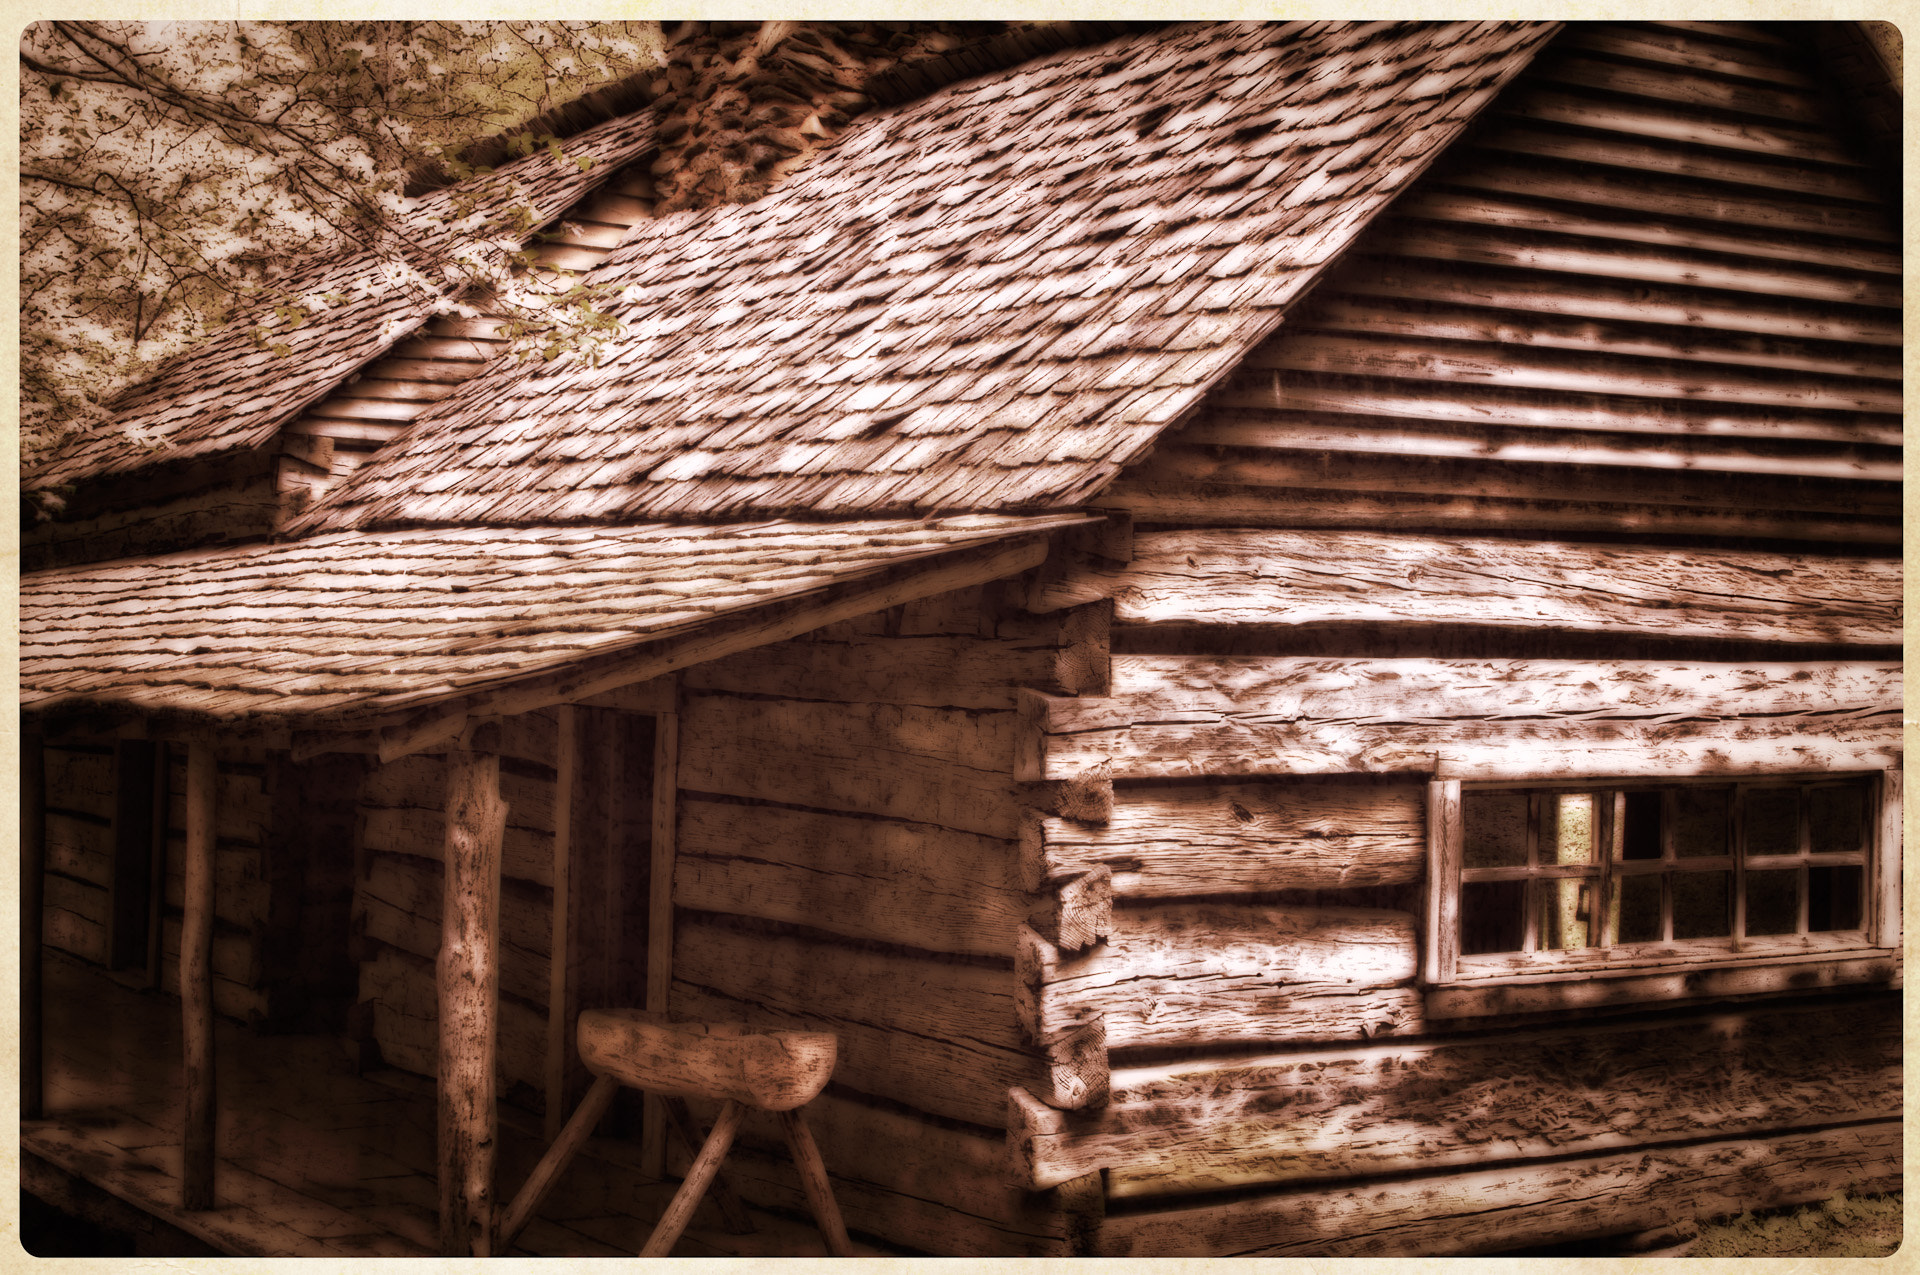 Photograph Cabin Dreams by Anthony Tokarz on 500px